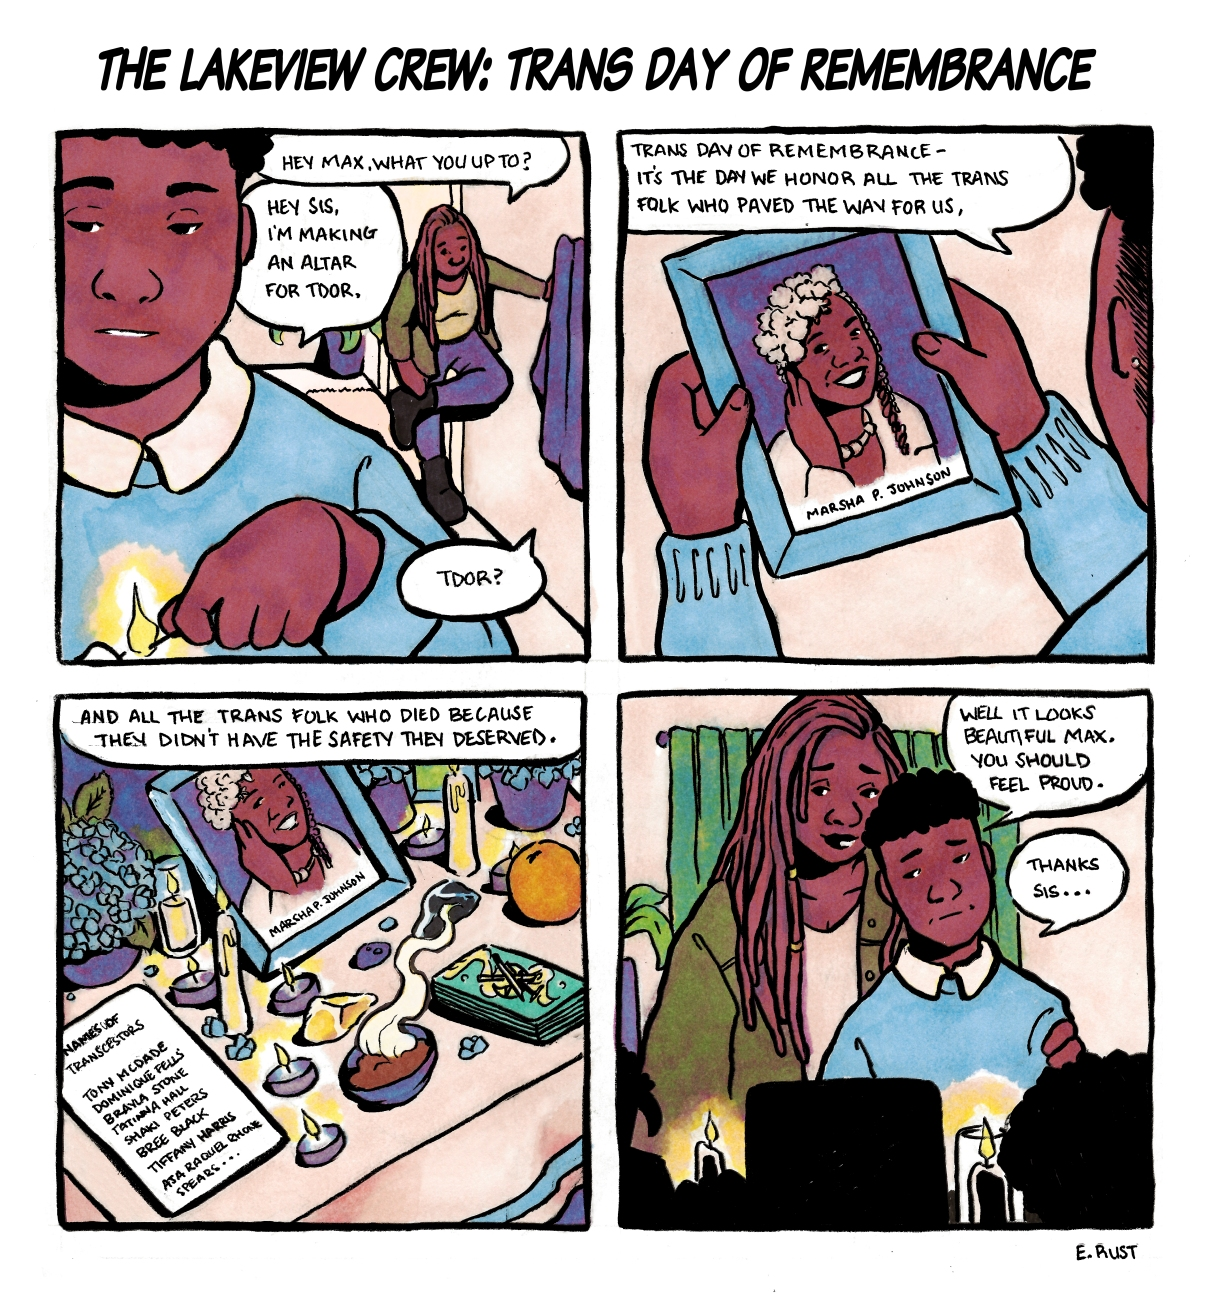 "In a four panel, hand drawn comic, Max explains the history of Trans Day of Remembrance to their sister. Max is warm, deep, brown skin with a light blue sweater and white collared shirt. Their sister has long dreadlocks with beads and a green jacket. Their sister comes home as Max is lighting a candle and asks what they are doing. Max explains that Trans Day of Remembrance, which is ""The day we honor all the trans folk who paved the way for us, and all the trans folk who died because didn't have the safety they deserved."" Max holds a photograph of Marsha P. Johnson. Their sister compliments them on their altar, and says they should be proud."